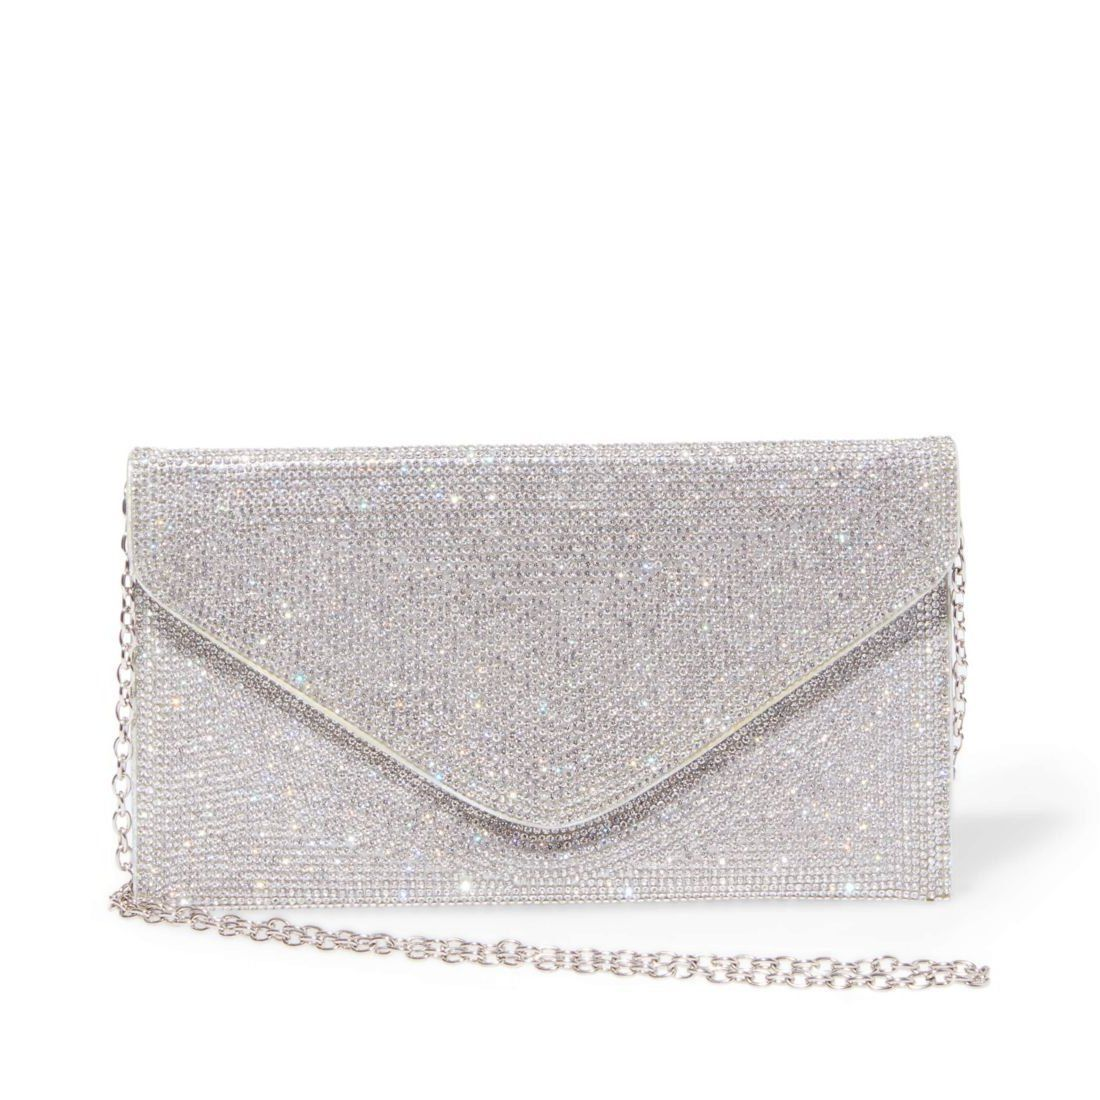 Tiny rhinestones blanket BSWAGGER's face, transforming this otherwise simple envelope bag into a sparkling statement style. Rock this flashy new favorite as a crossbody, or tuck its delicate chain strap inside and carry as a clutch. Clutch 5